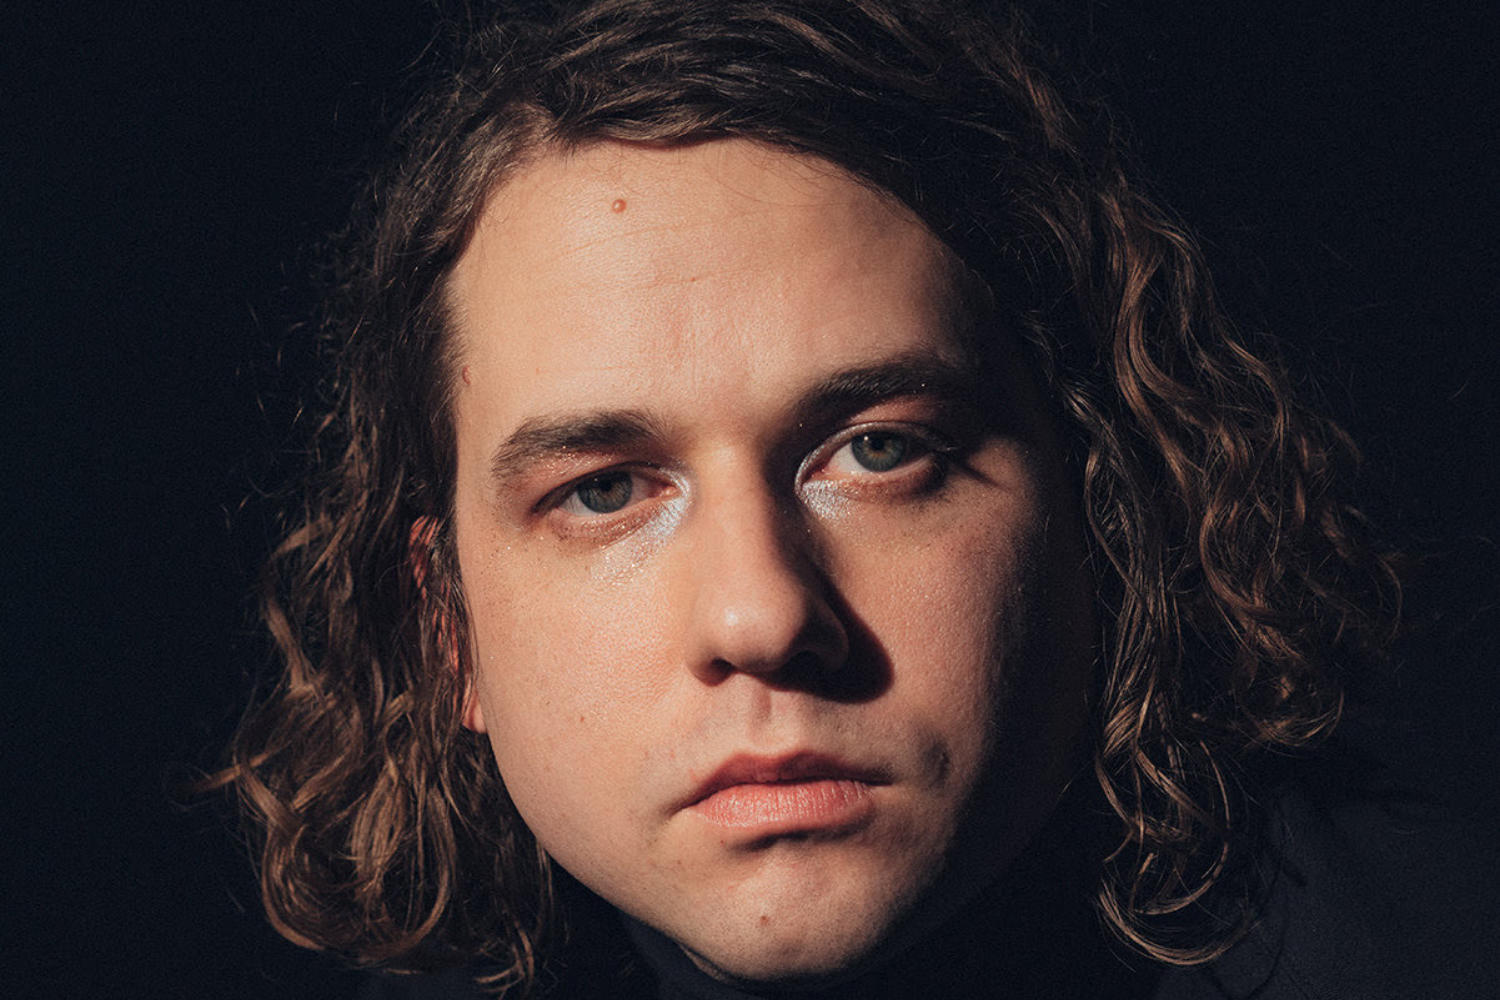 Kevin Morby announces new album 'Oh My God' with 'No Halo' video